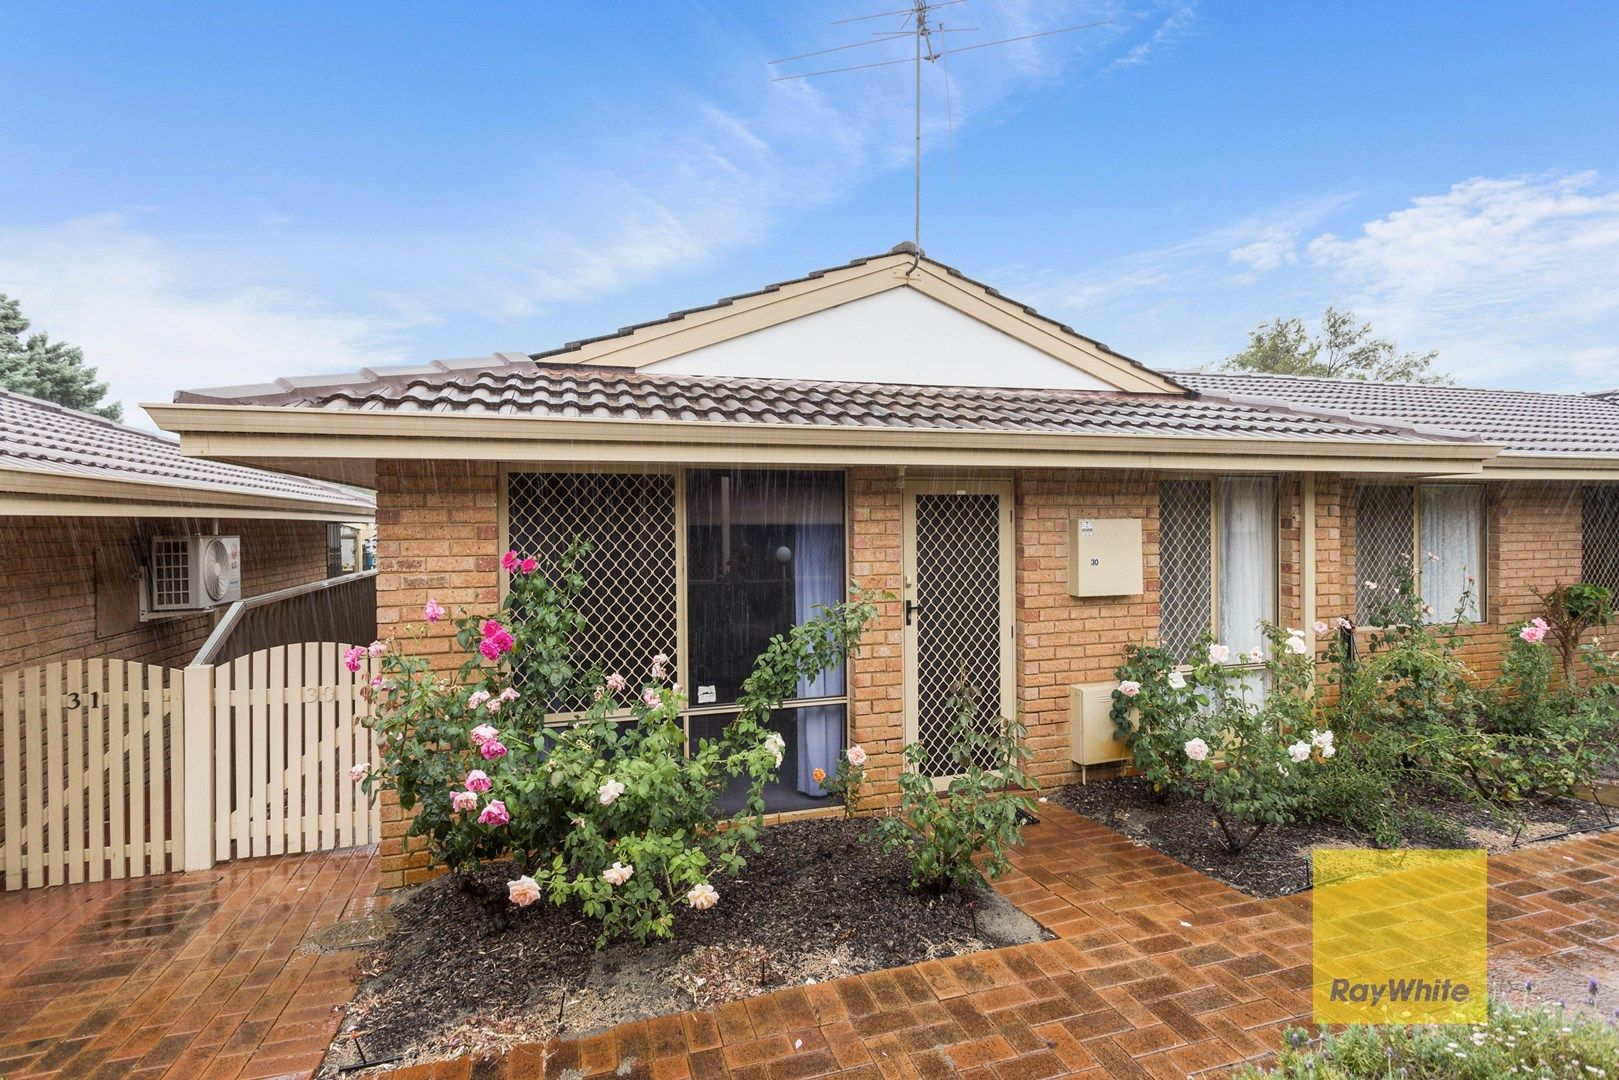 30/15 Mereworth Way, Marangaroo WA 6064, Image 1